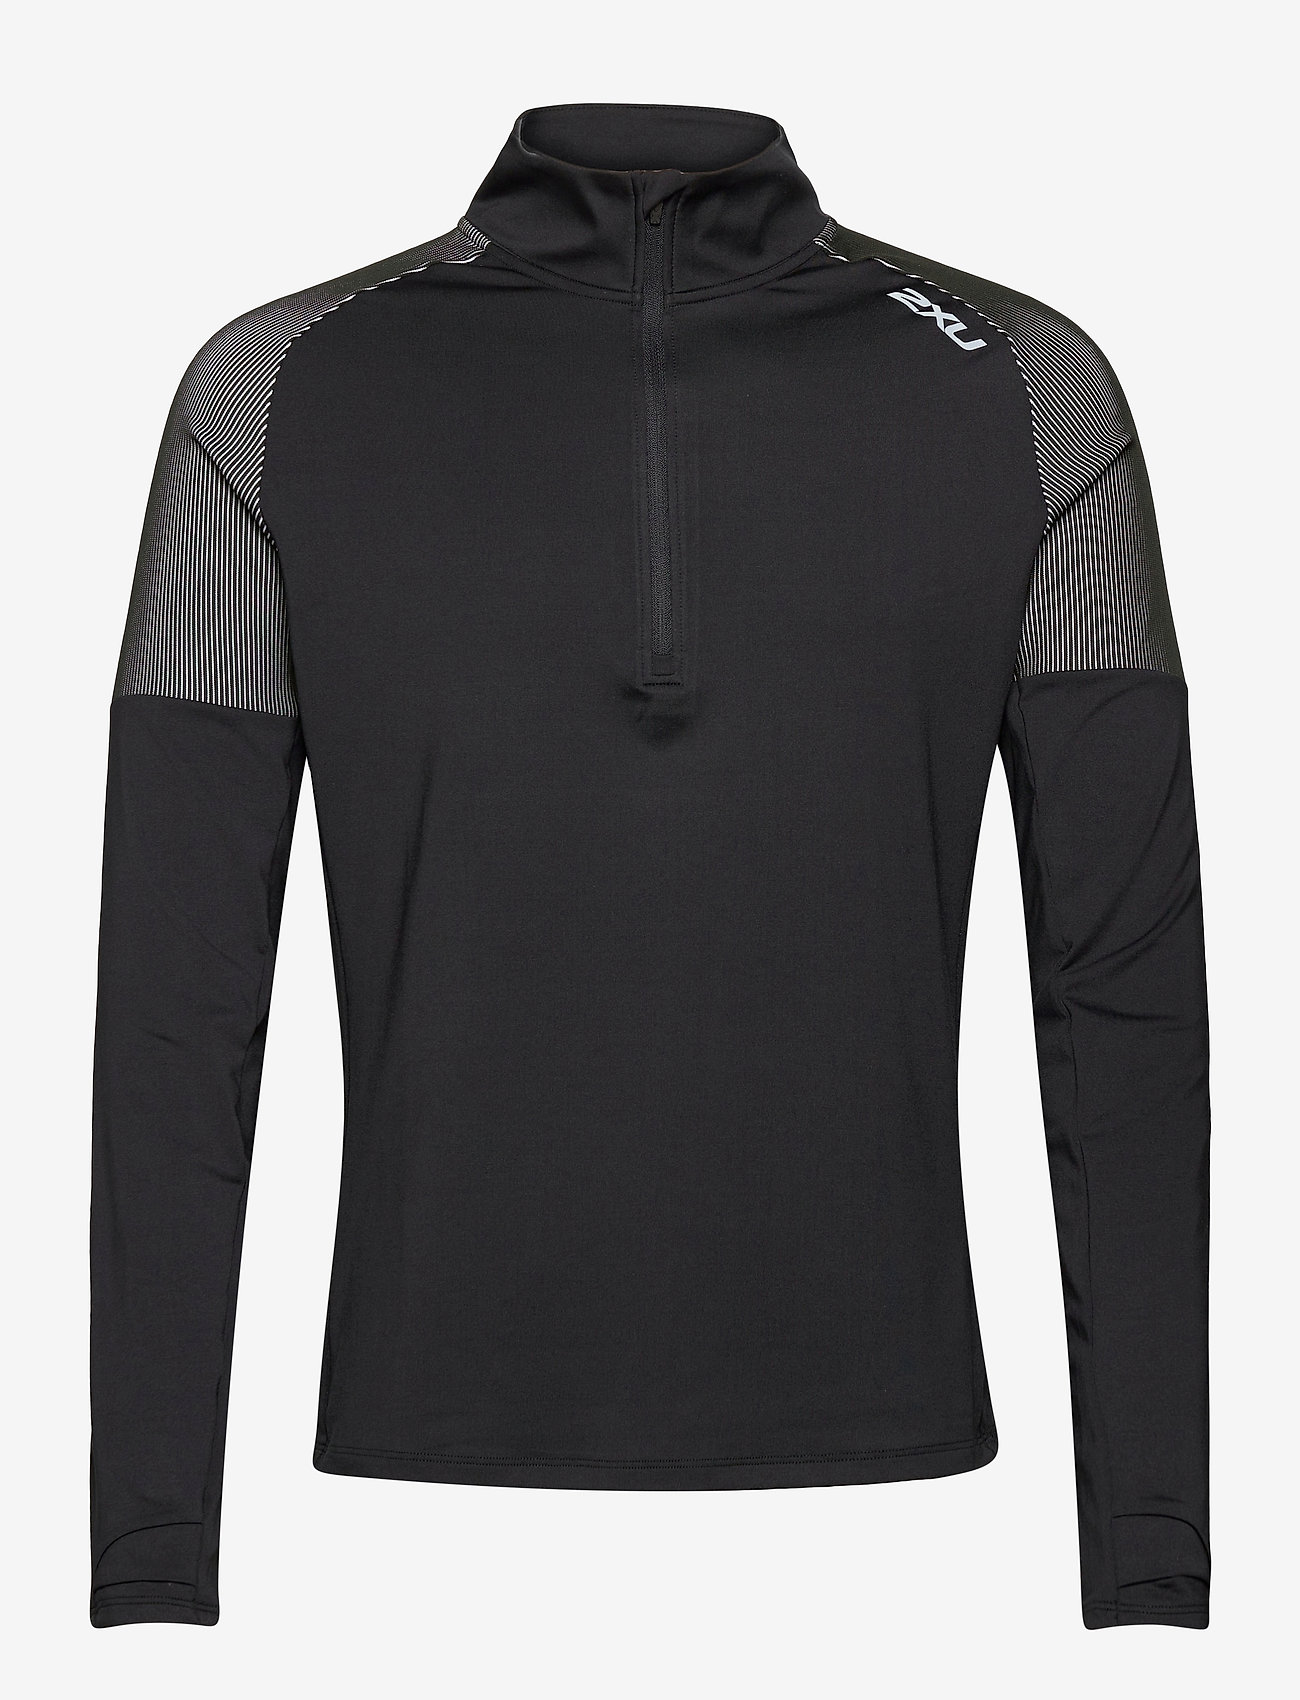 2XU - LIGHT SPEED 1/2 ZIP - langaermede-toppe - black/silver reflective - 0